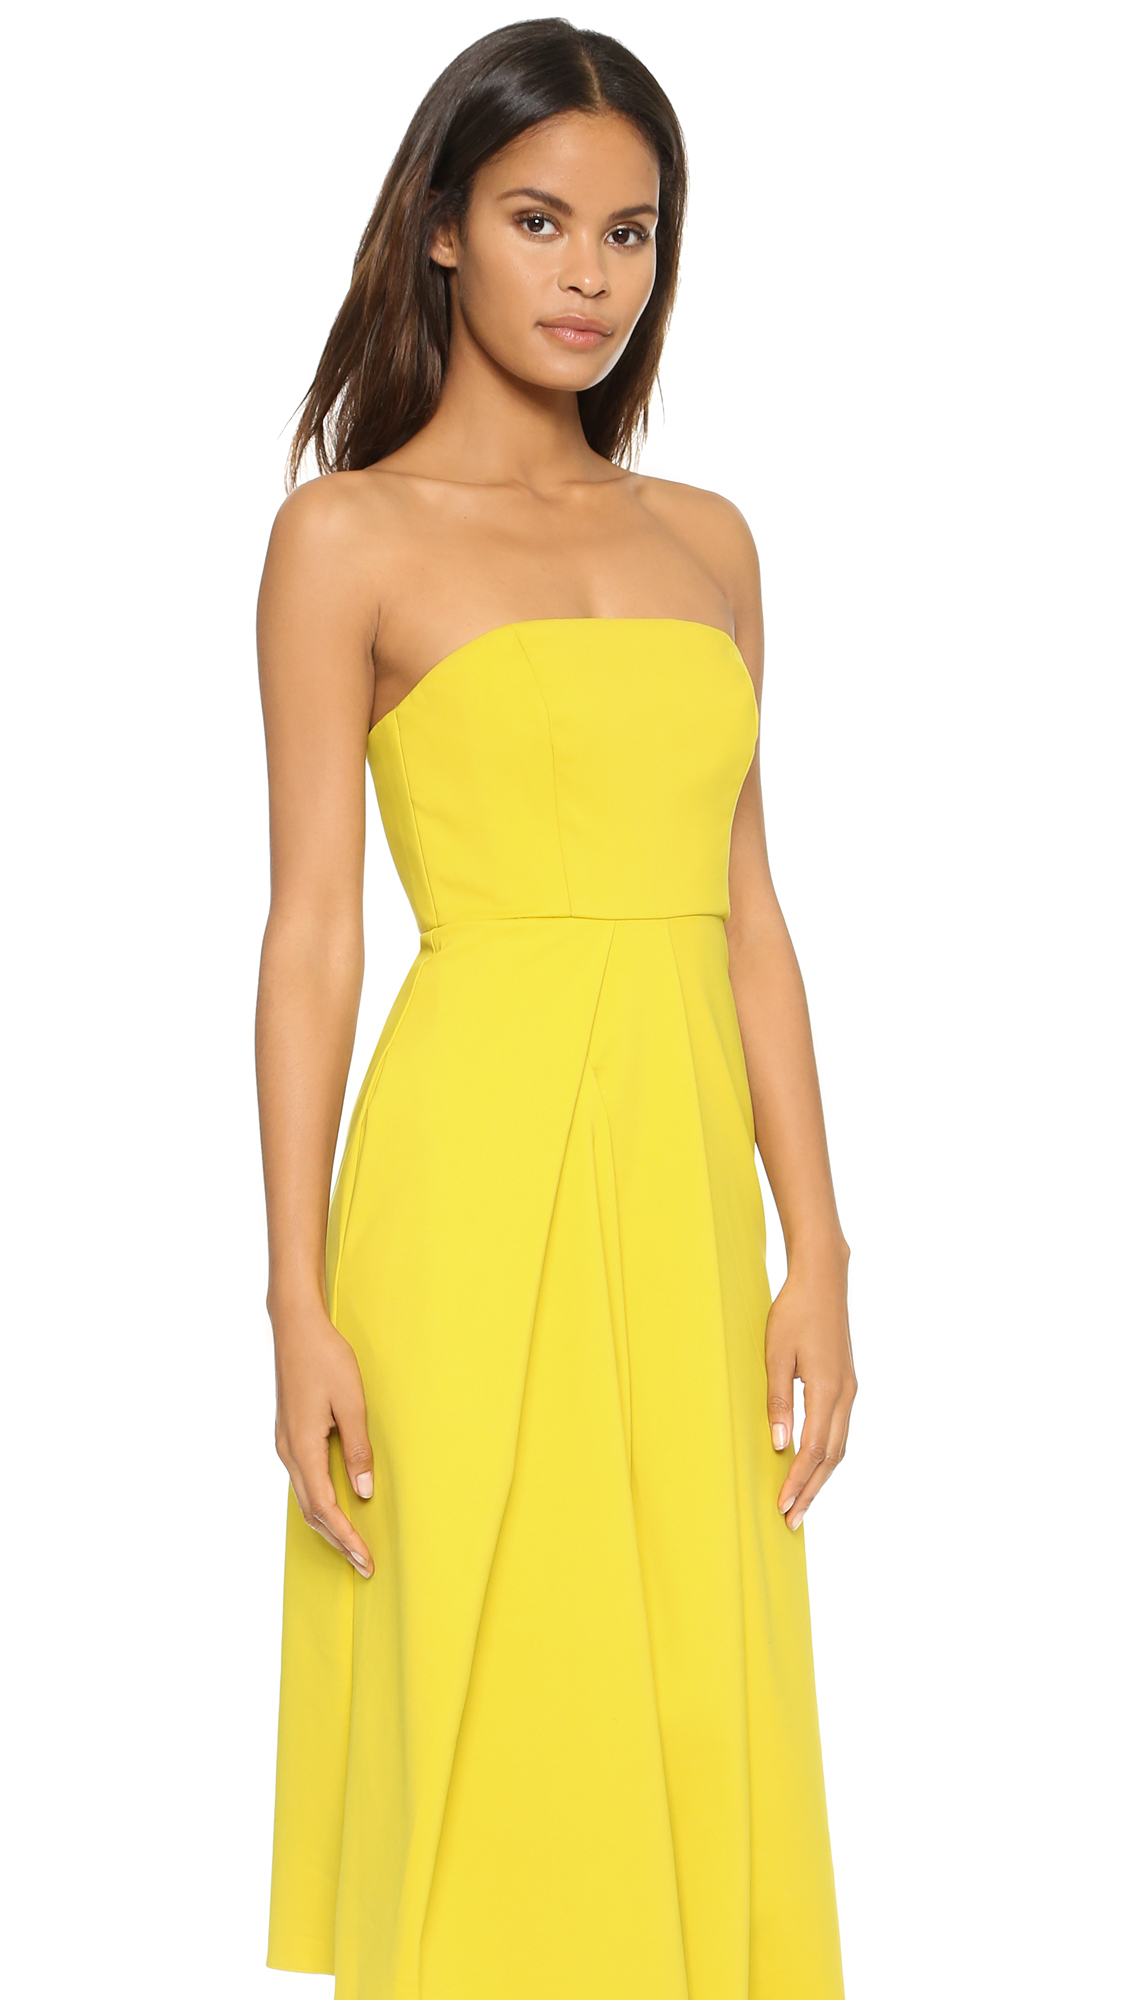 Tibi Asymmetric Drape Strapless Dress - Mustard Seed in Yellow - Lyst